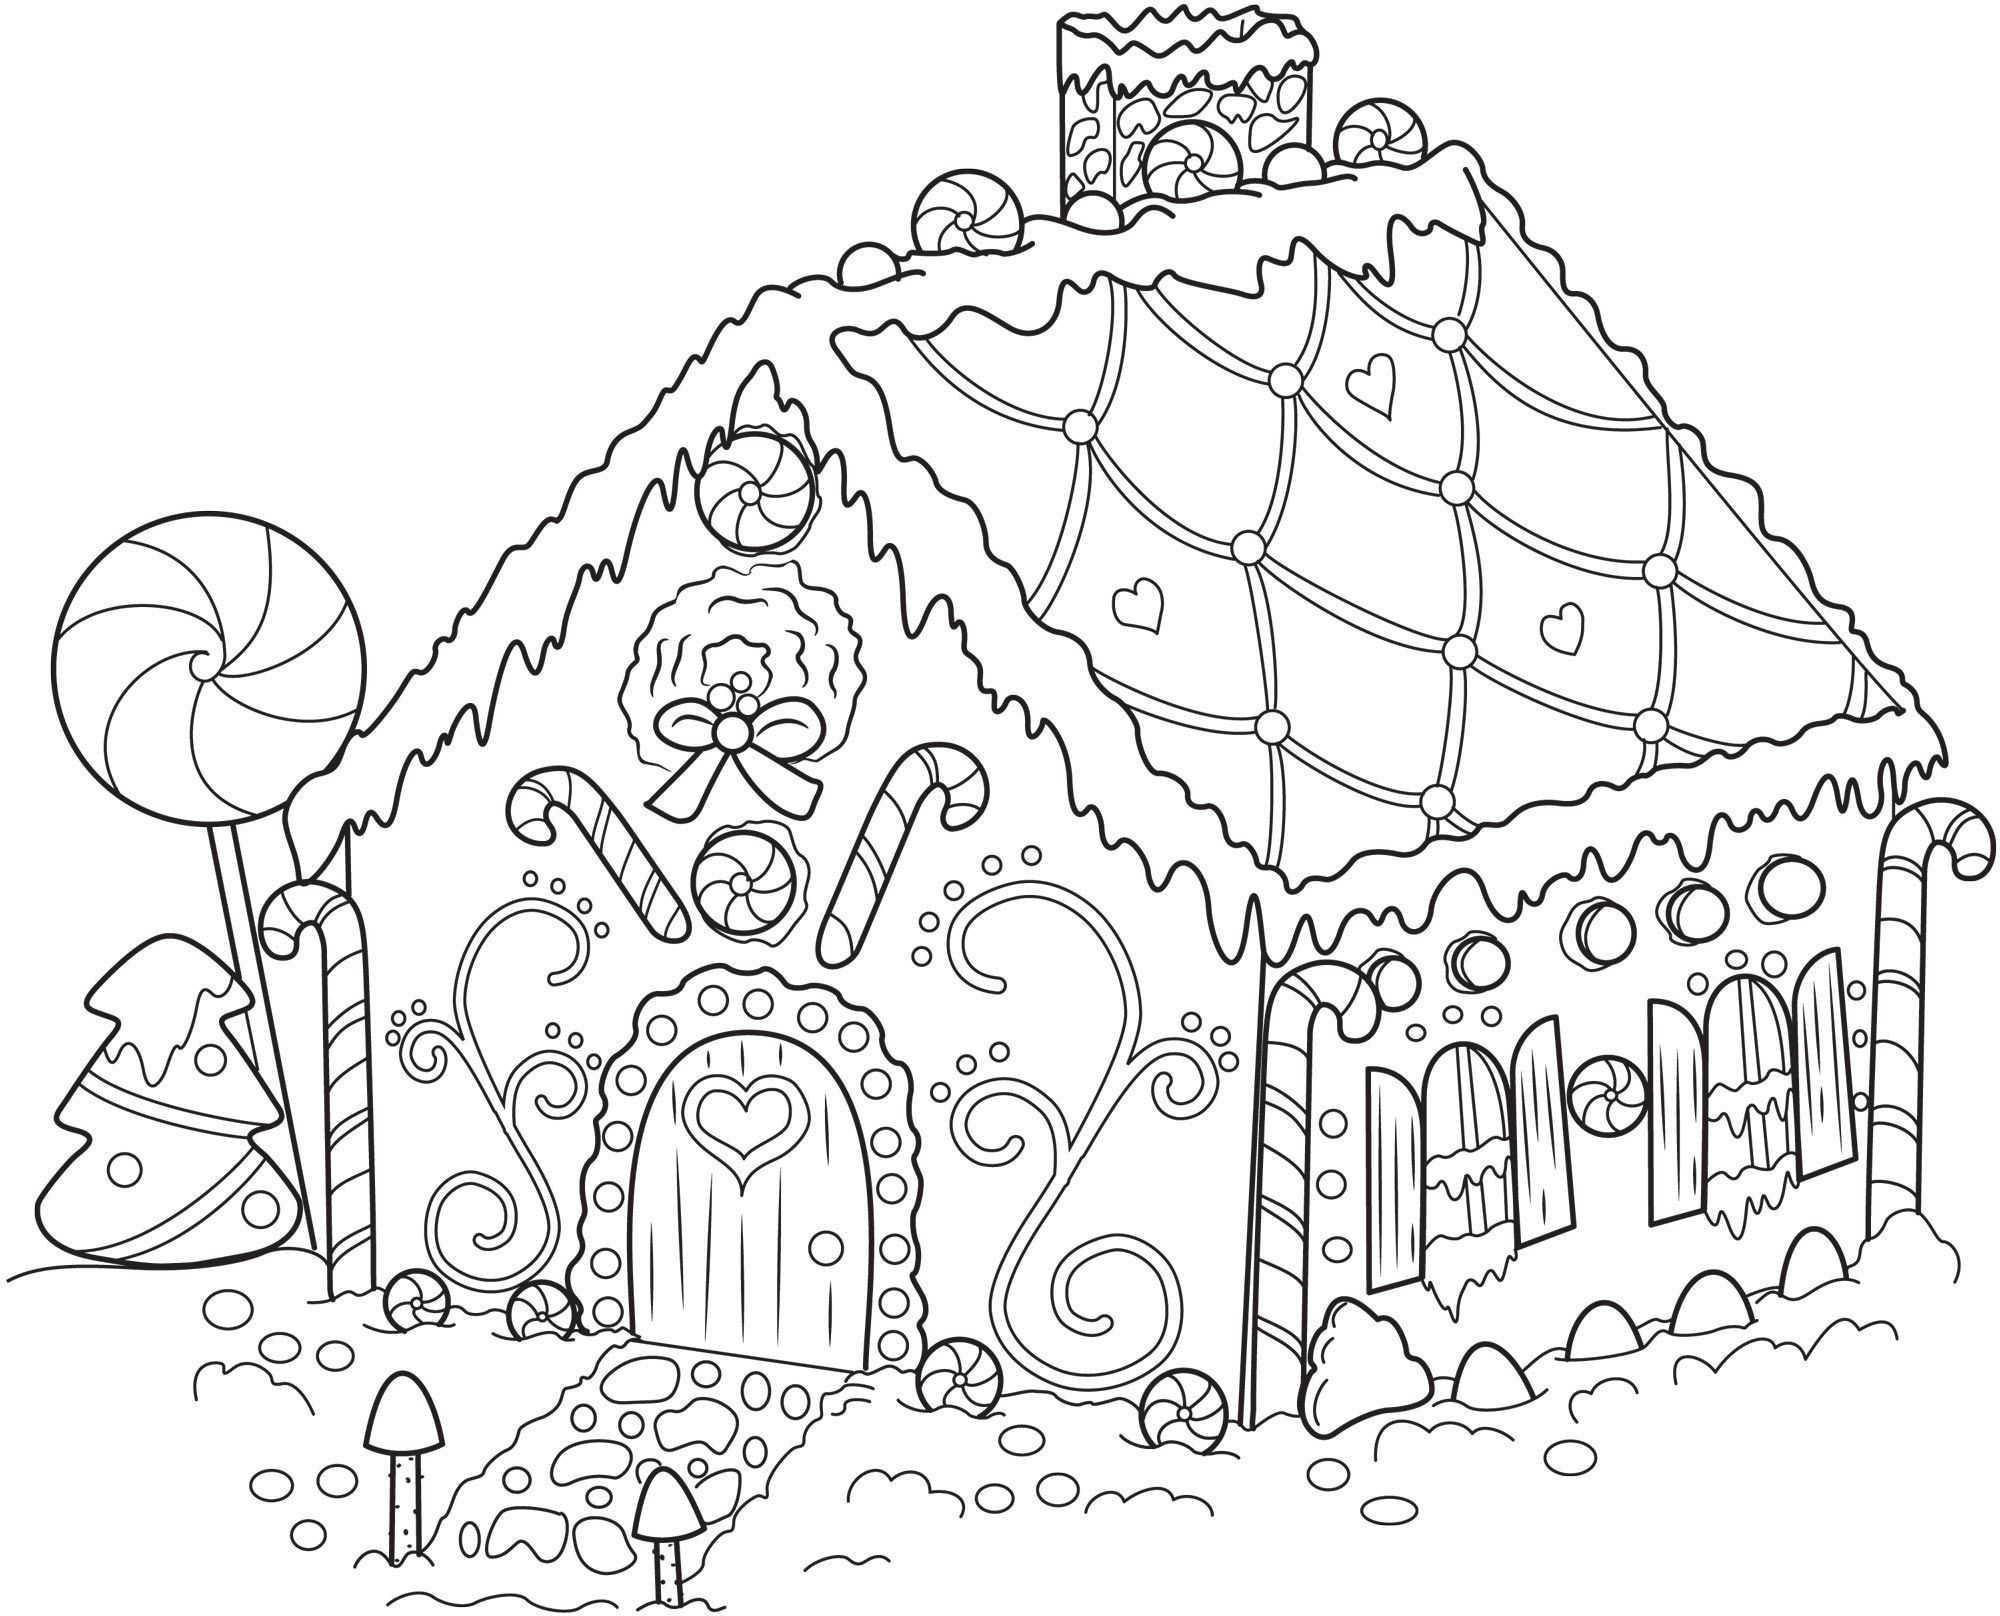 Candy House Coloring Pages For Boys Free Gingerbread Man Fairy Tale Color Printable Christmas Coloring Pages Christmas Coloring Books Snowflake Coloring Pages